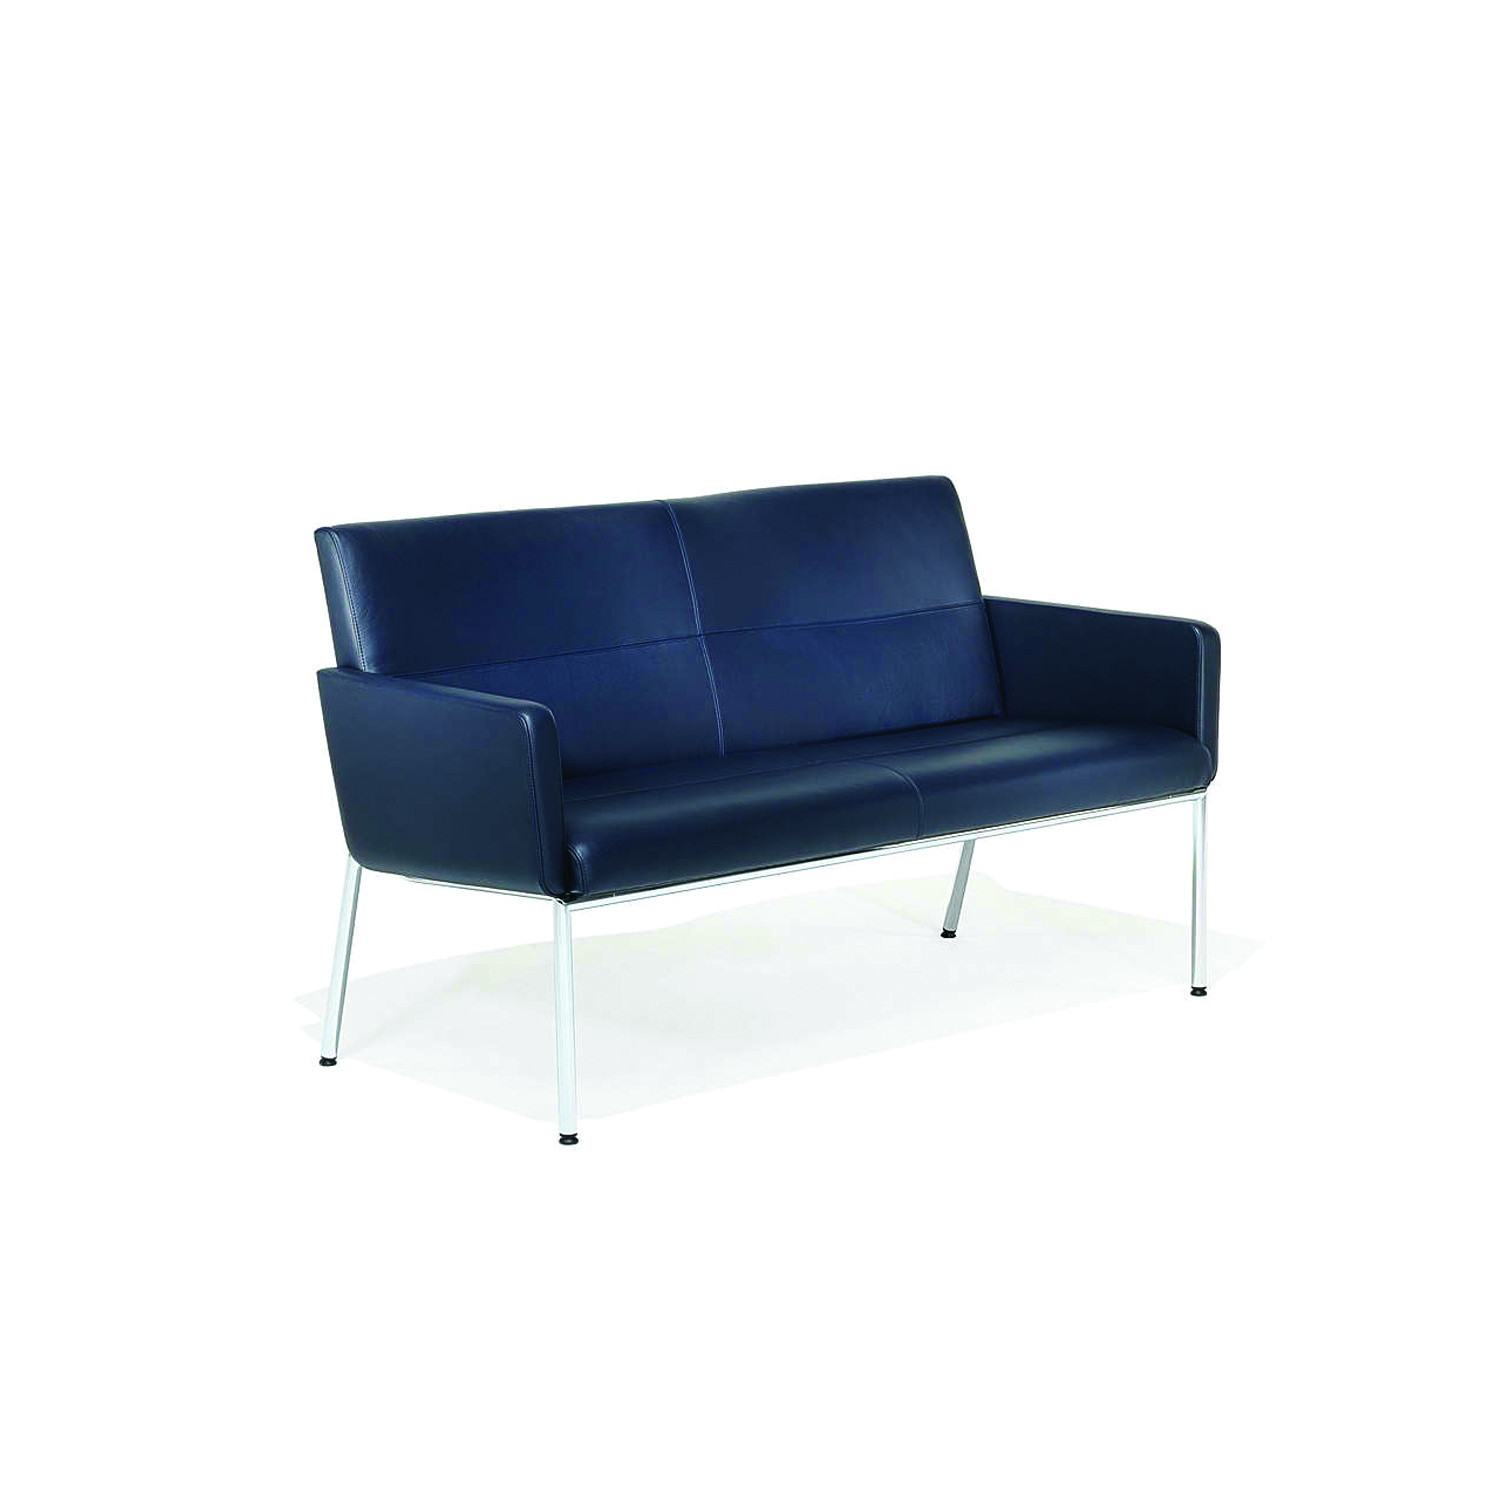 3150 Scorpii Reception Sofa with armrests